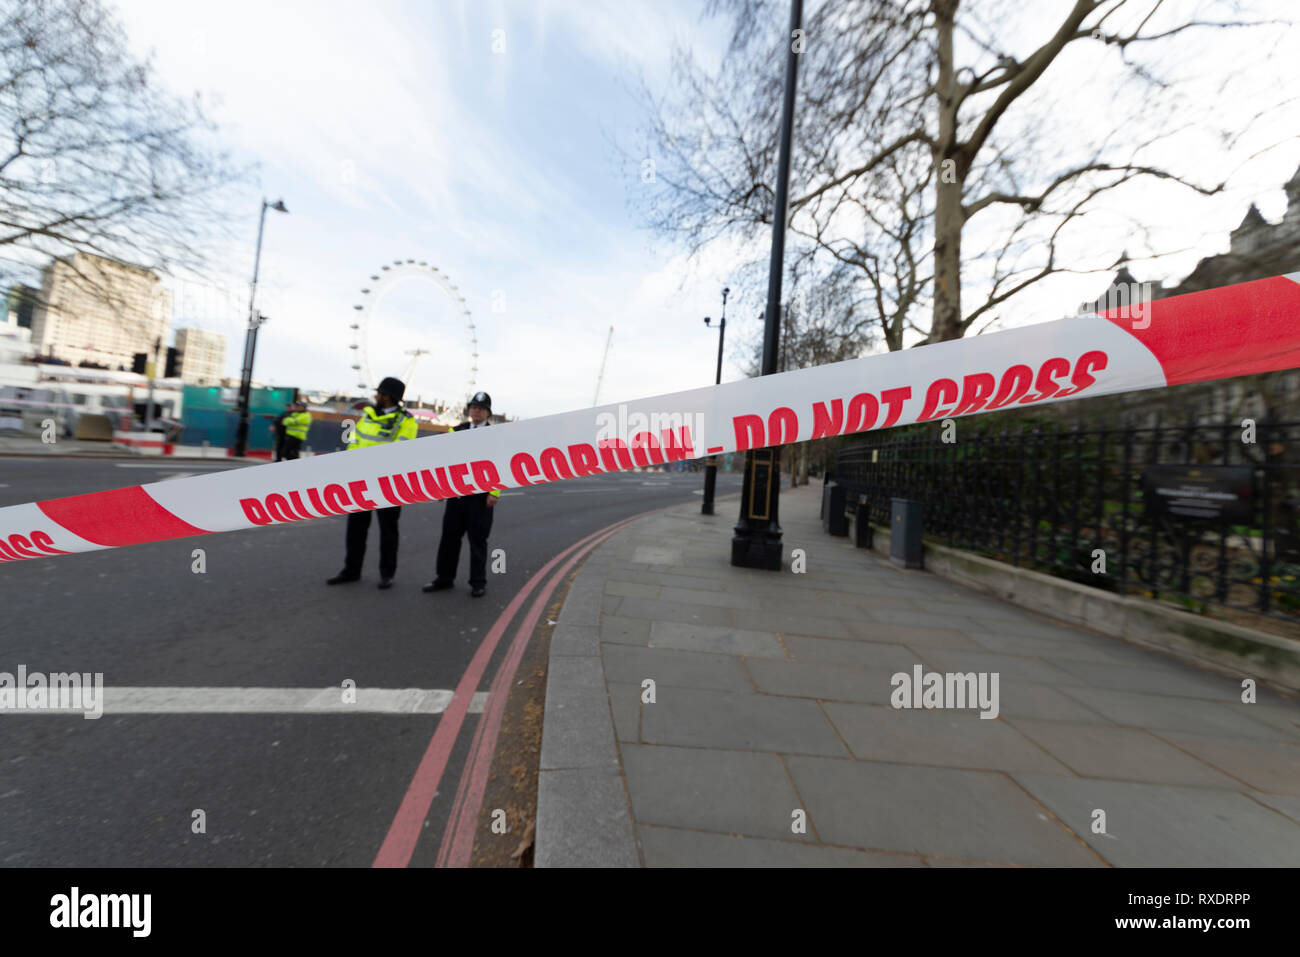 A suspicious car parked outside New Scotland Yard police headquarters on Victoria Embankment, Westminster, London, UK caused the police to lockdown and clear the the area around it and Westminster Bridge, including stopping river traffic on the Thames. Police broke the rear screen of the car to gain entry. - Stock Image